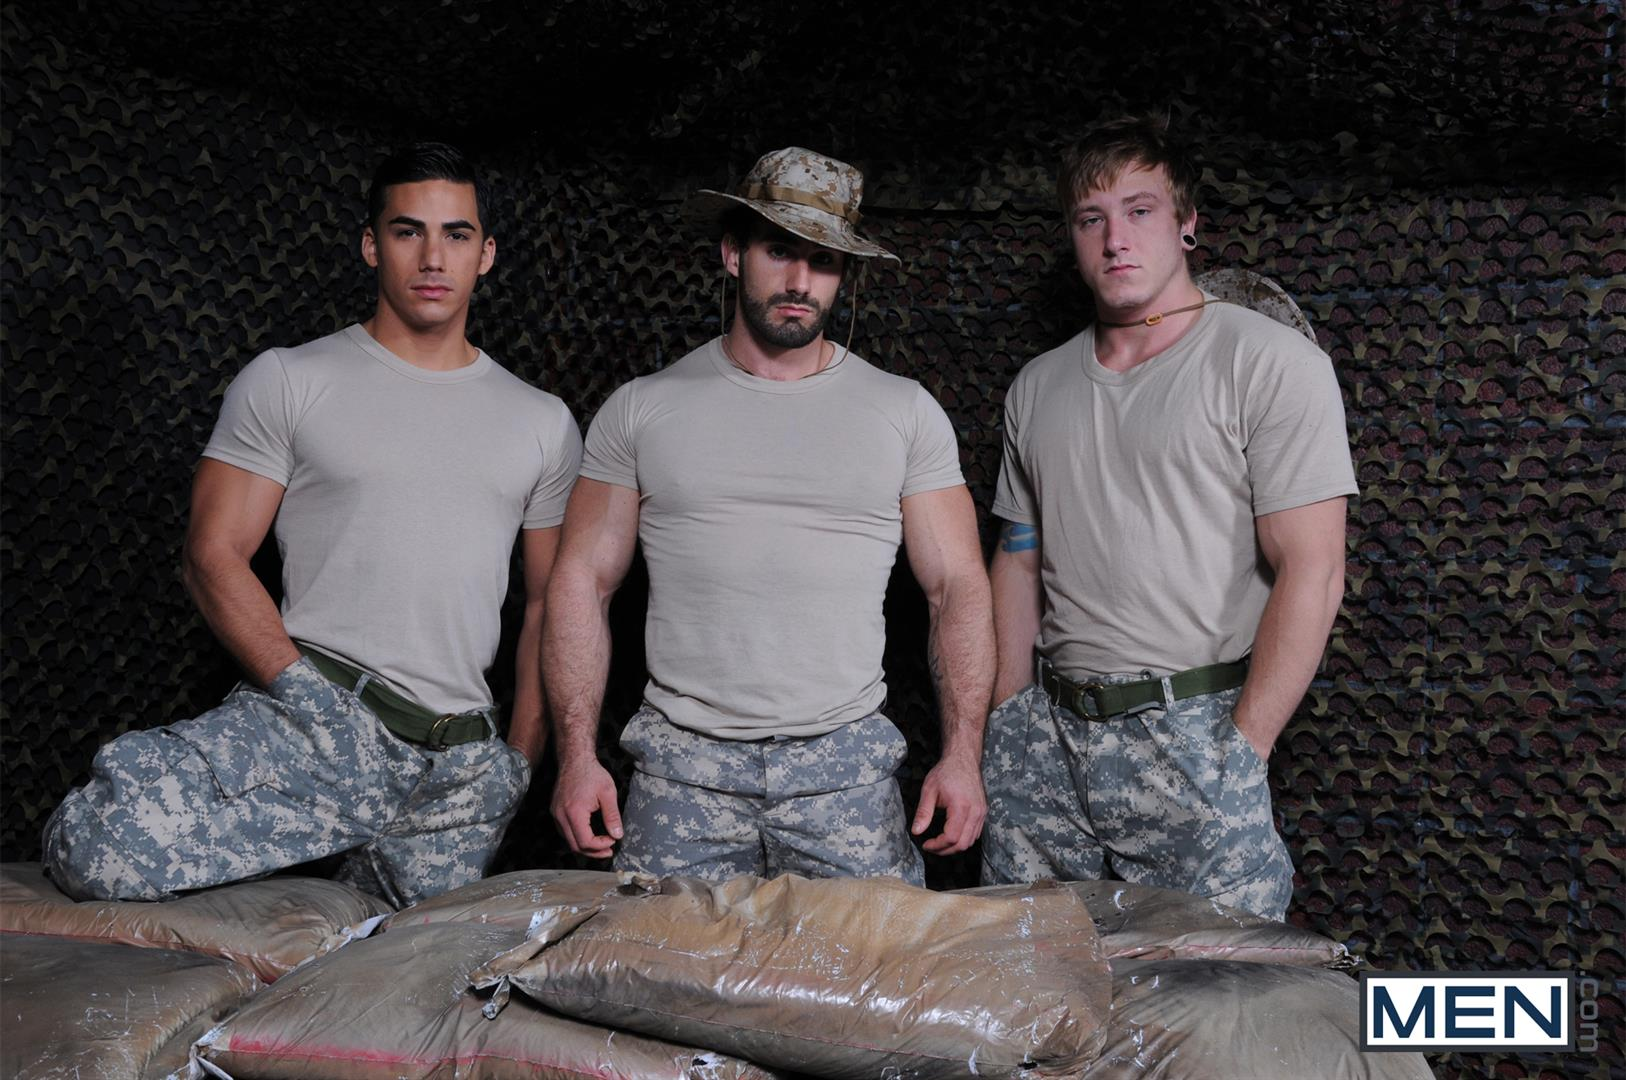 Men-Tour-of-Duty-Jaxton-Wheeler-and-Tom-Faulk-and-Topher-Di-Maggio-Army-Guys-Fucking-Amateur-Gay-Porn-01 Tom Faulk Getting Fucked by Topher DiMaggio and Jaxton Wheeler